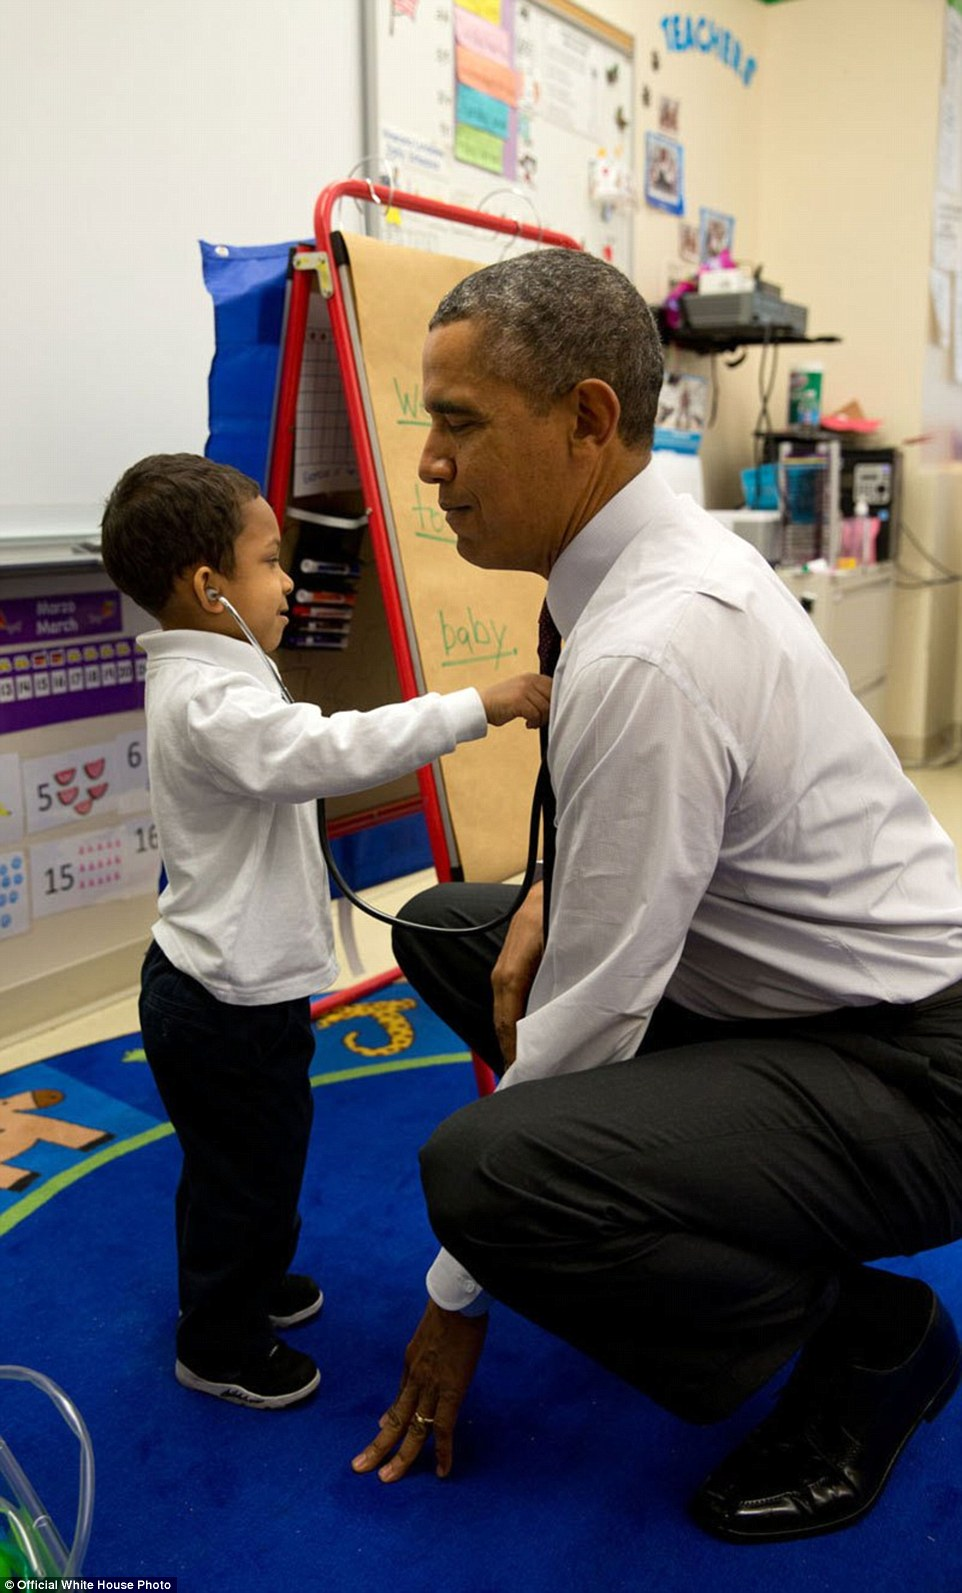 March 4, 2014. 'The President was visiting a classroom at Powell Elementary School in Washington, D.C. A young boy was using a stethoscope during the class, and as the President was about to leave the room, the President asked him to check his heartbeat'